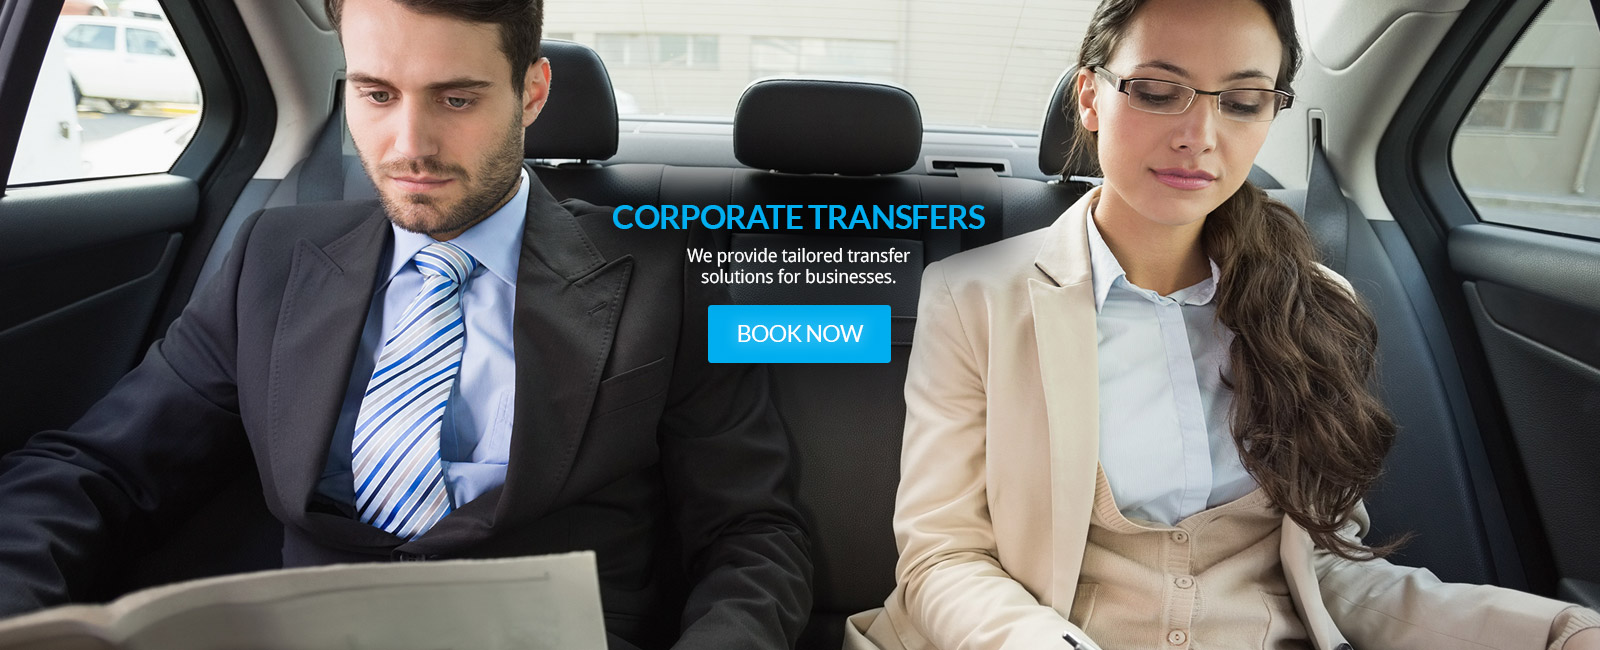 male and female sitting in back of car with words Corporate Transfers branded on image